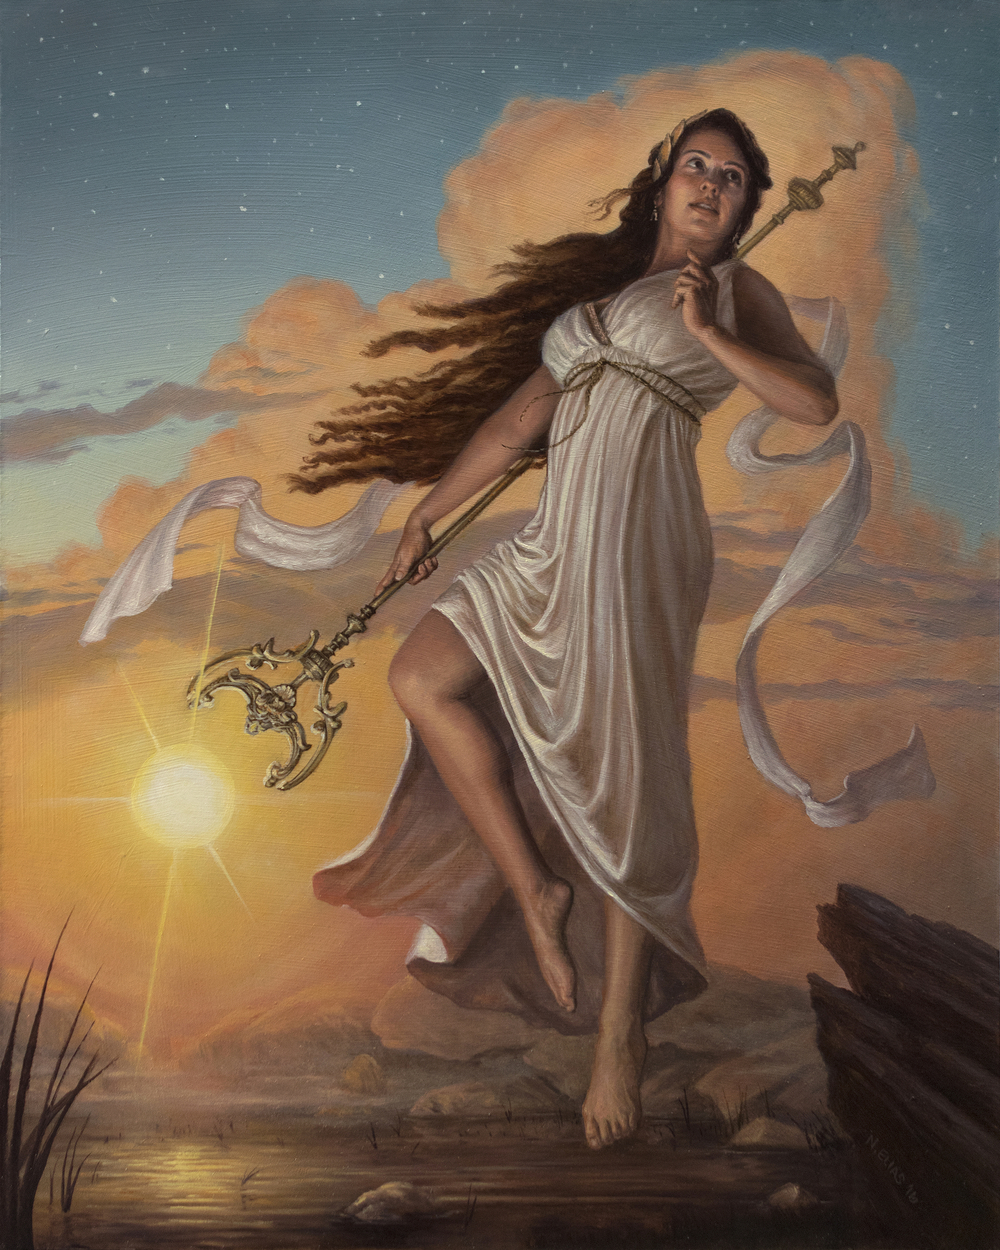 Hope (Eos, Bringer of Light) Artwork by Nicholas Elias